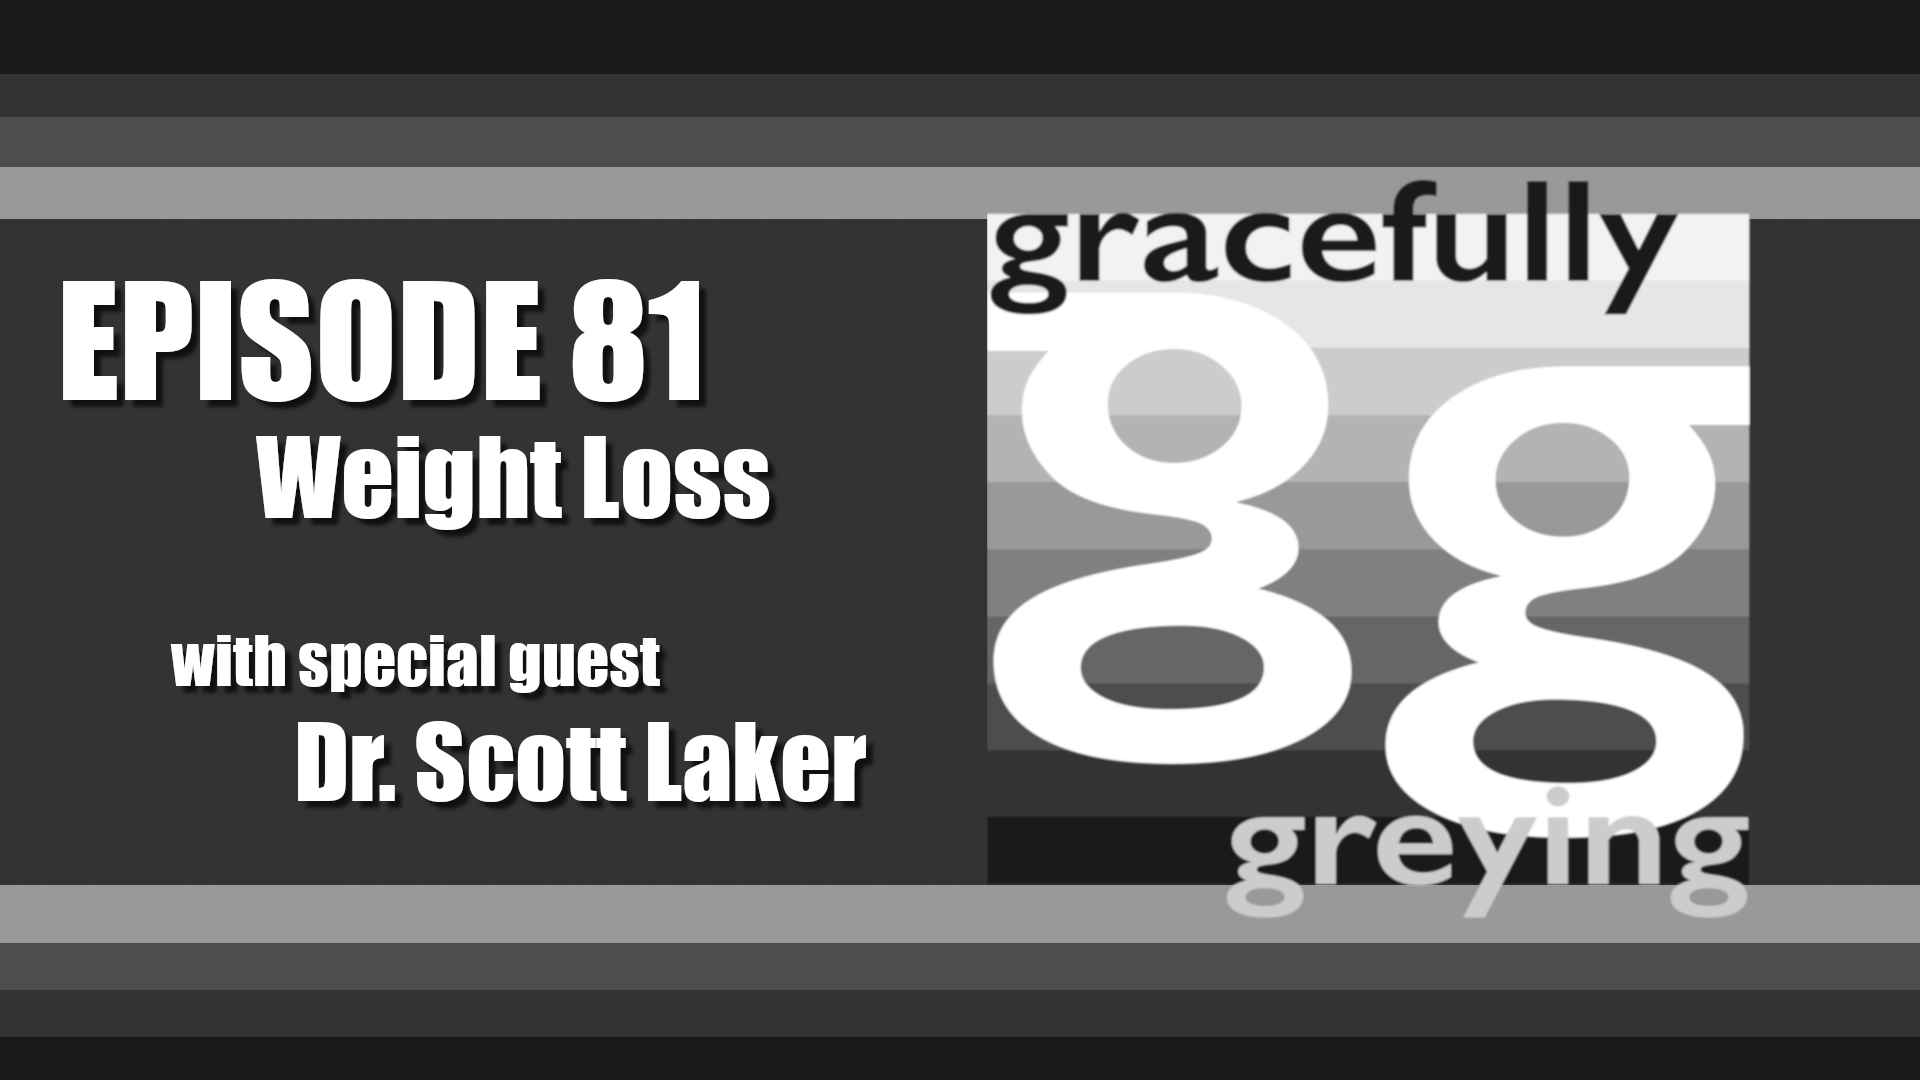 Gracefully Greying - Episode 81